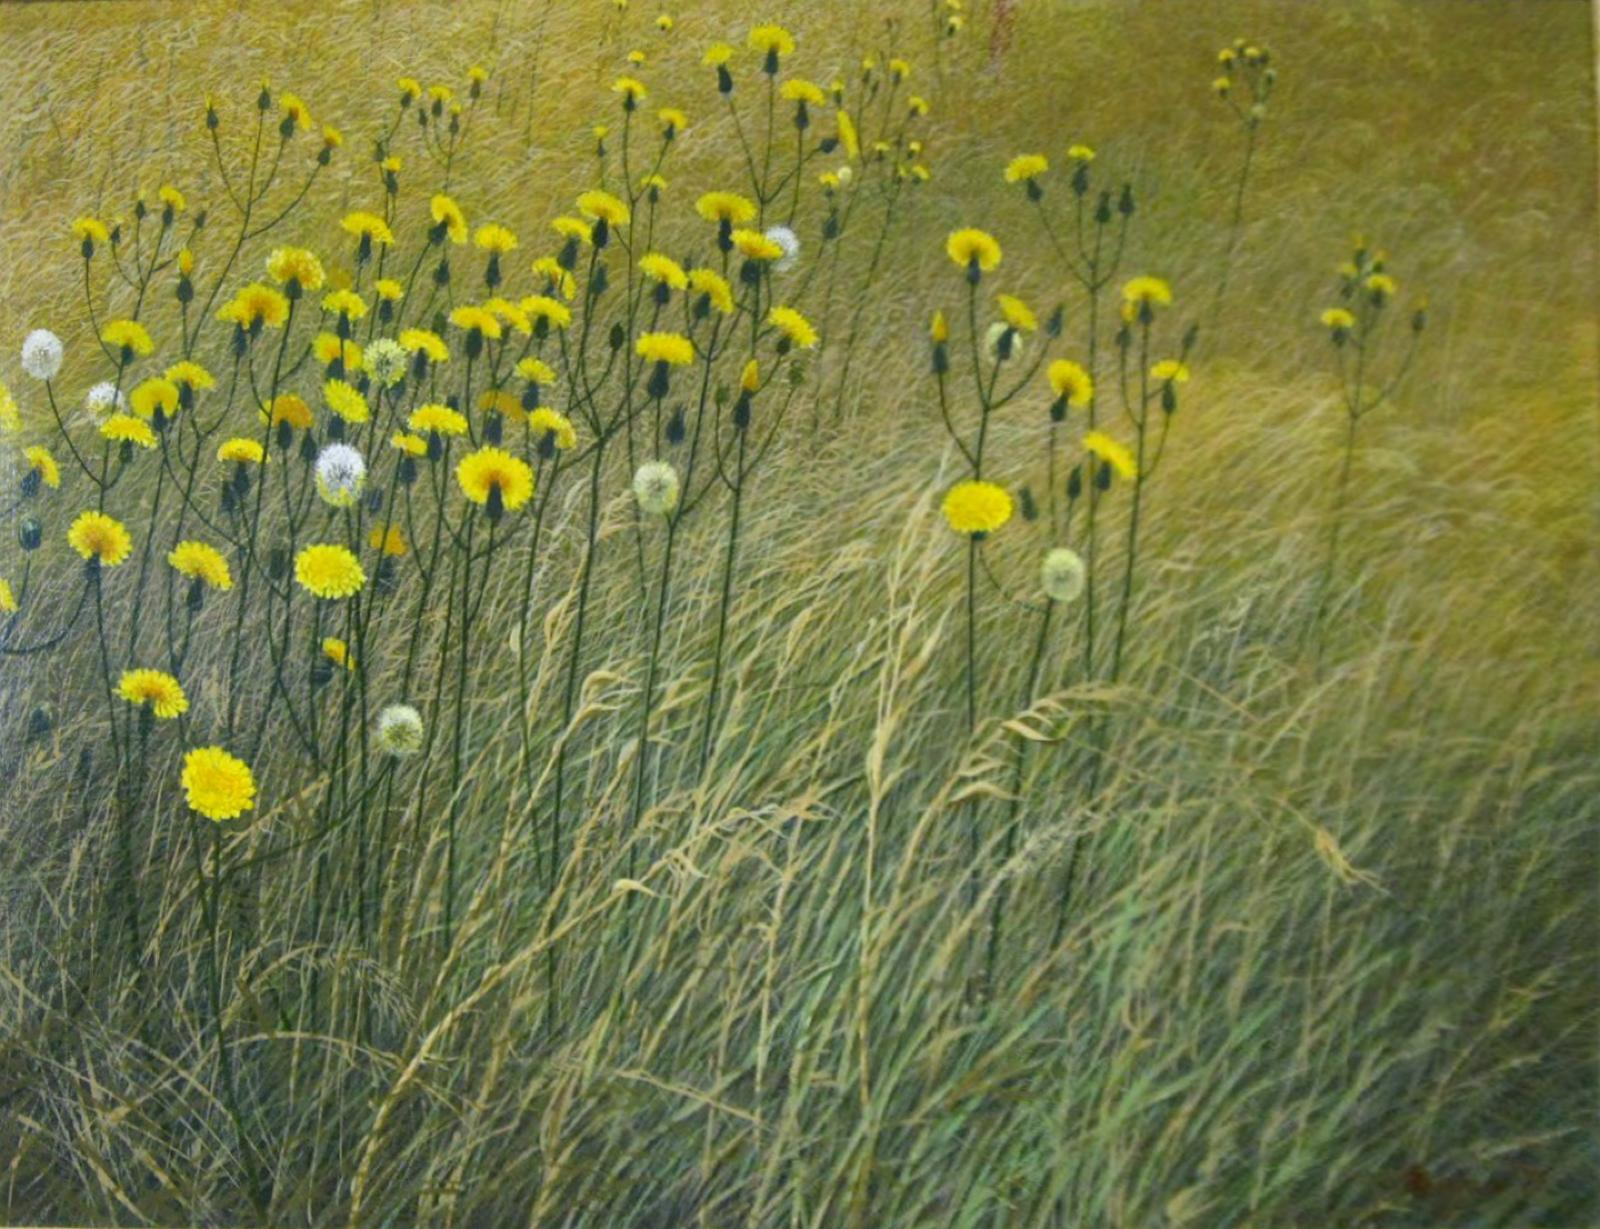 Wheat field with yellow and white flowers blowing in the wind.